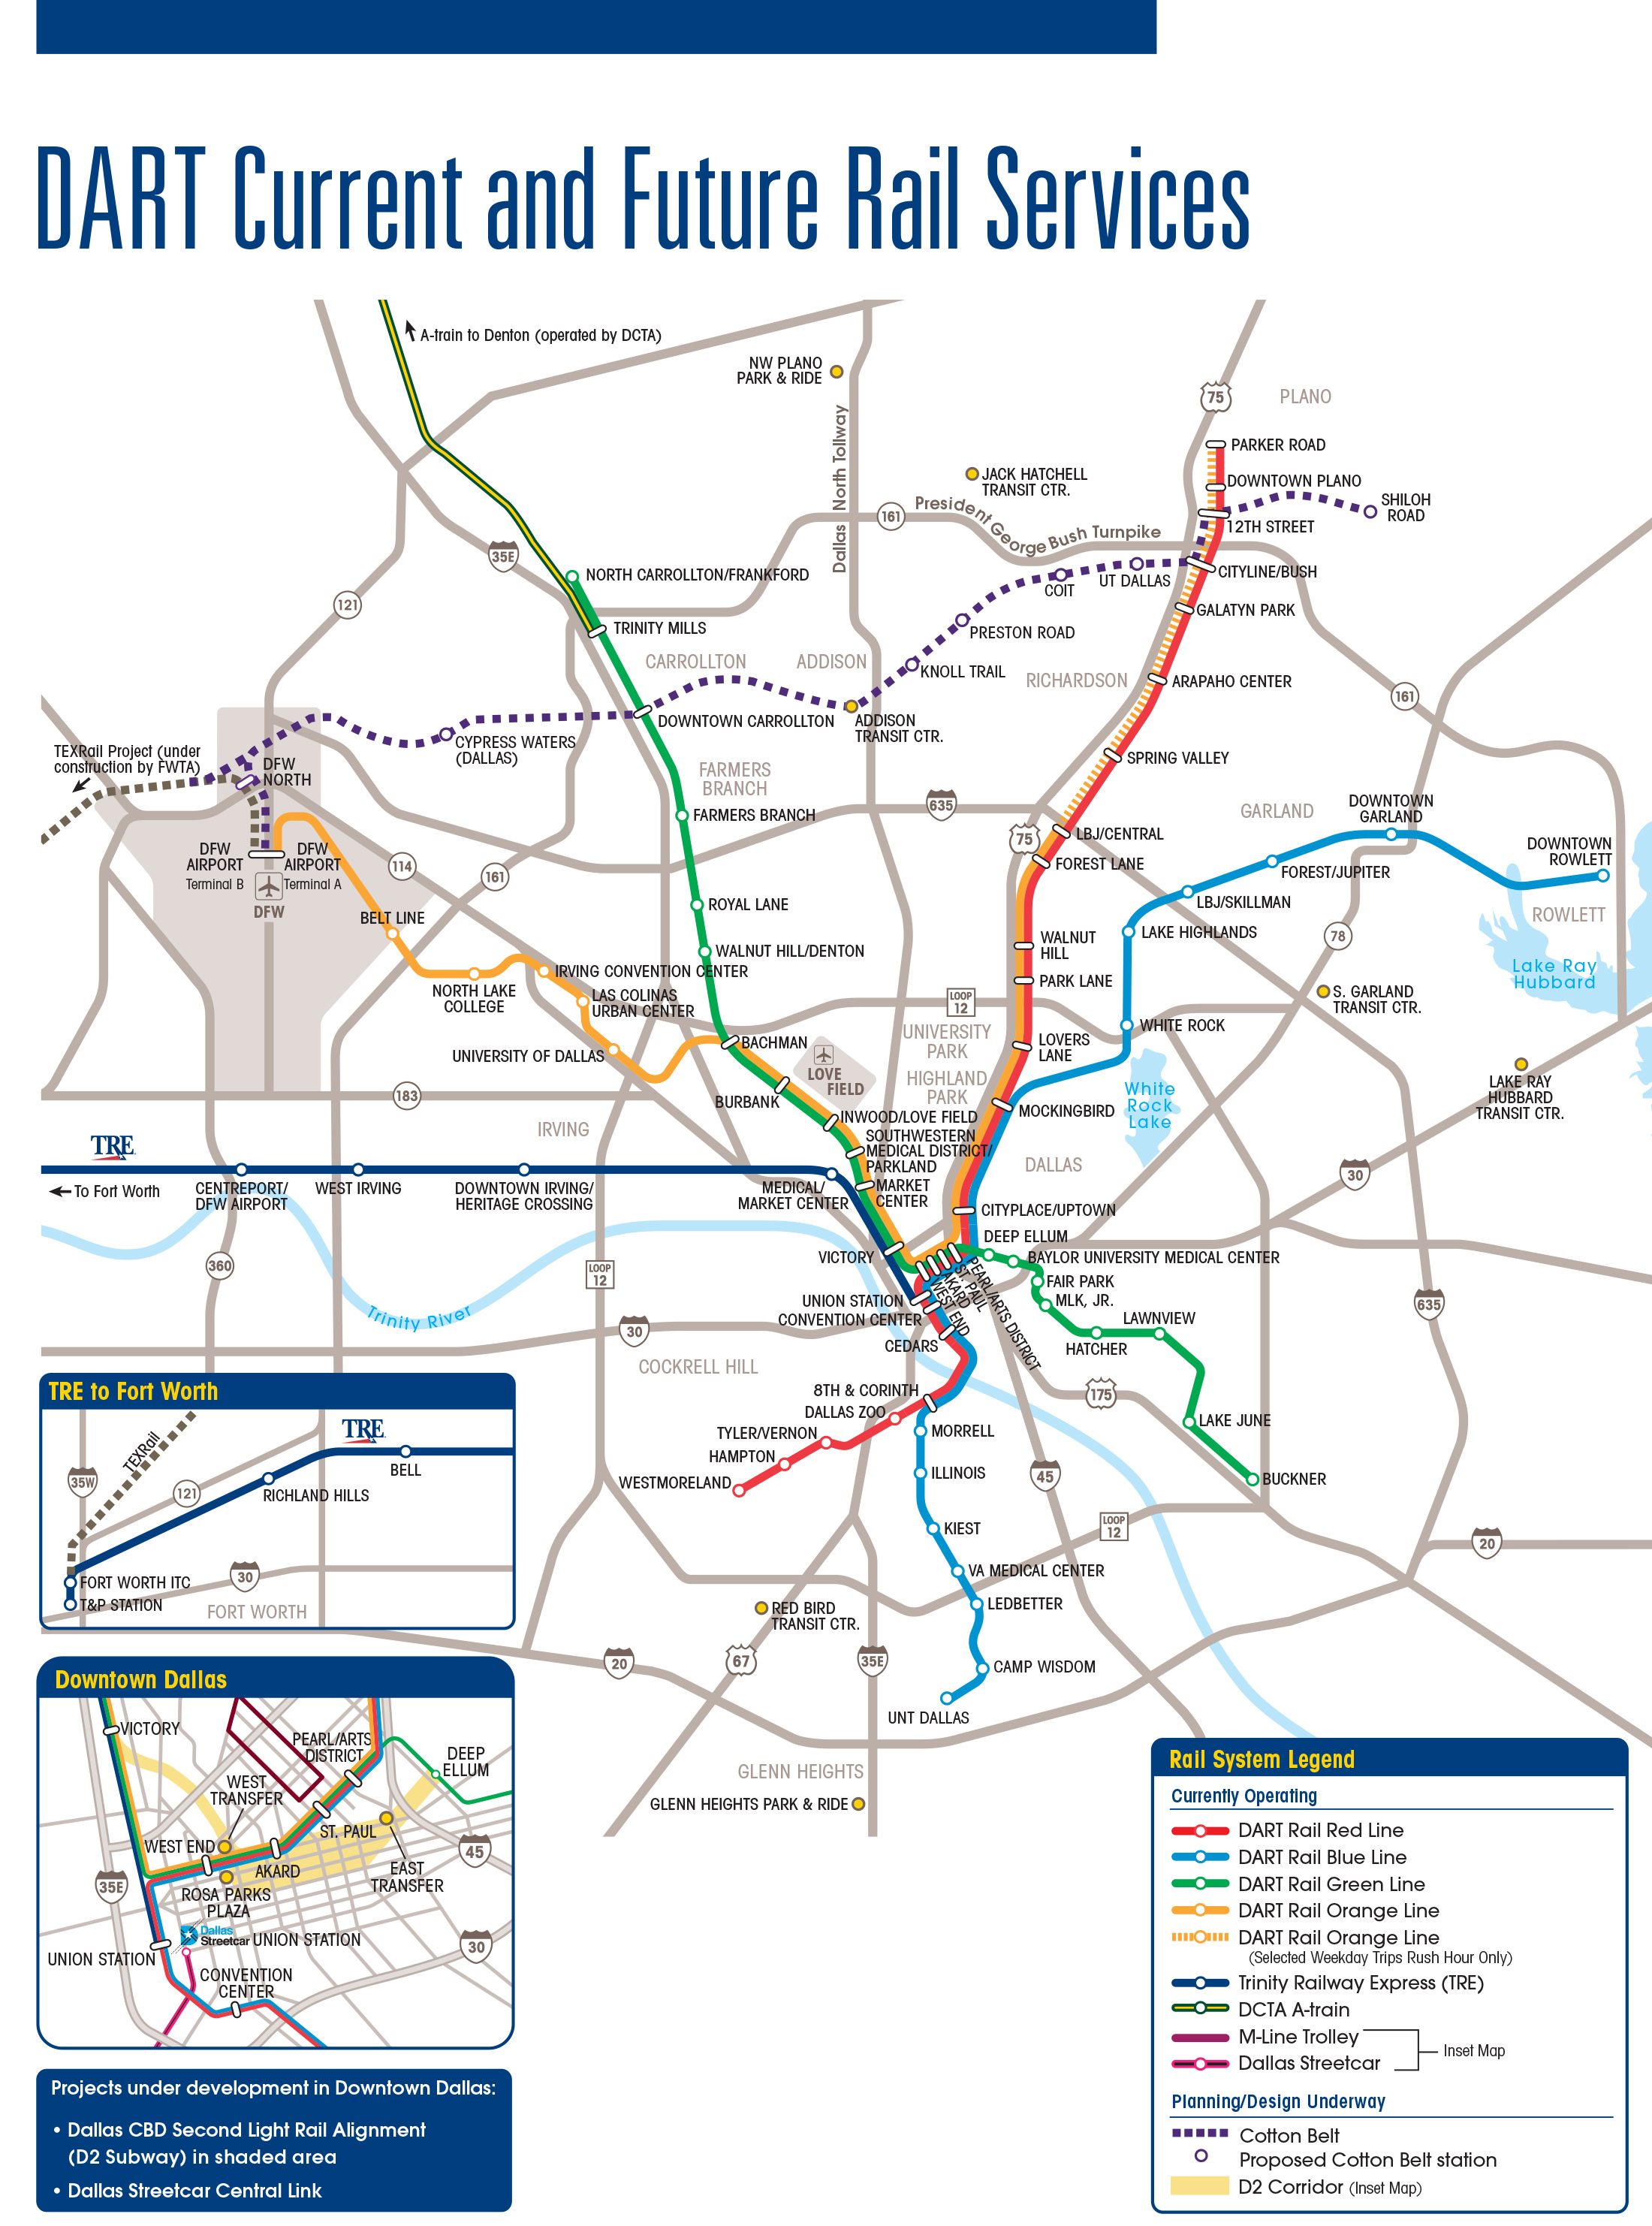 View A Printable Pdf Of The Current And Future Services Map Dart Transit System Plan Dart Rail Expansion Information Dart Rail Expansion Maps